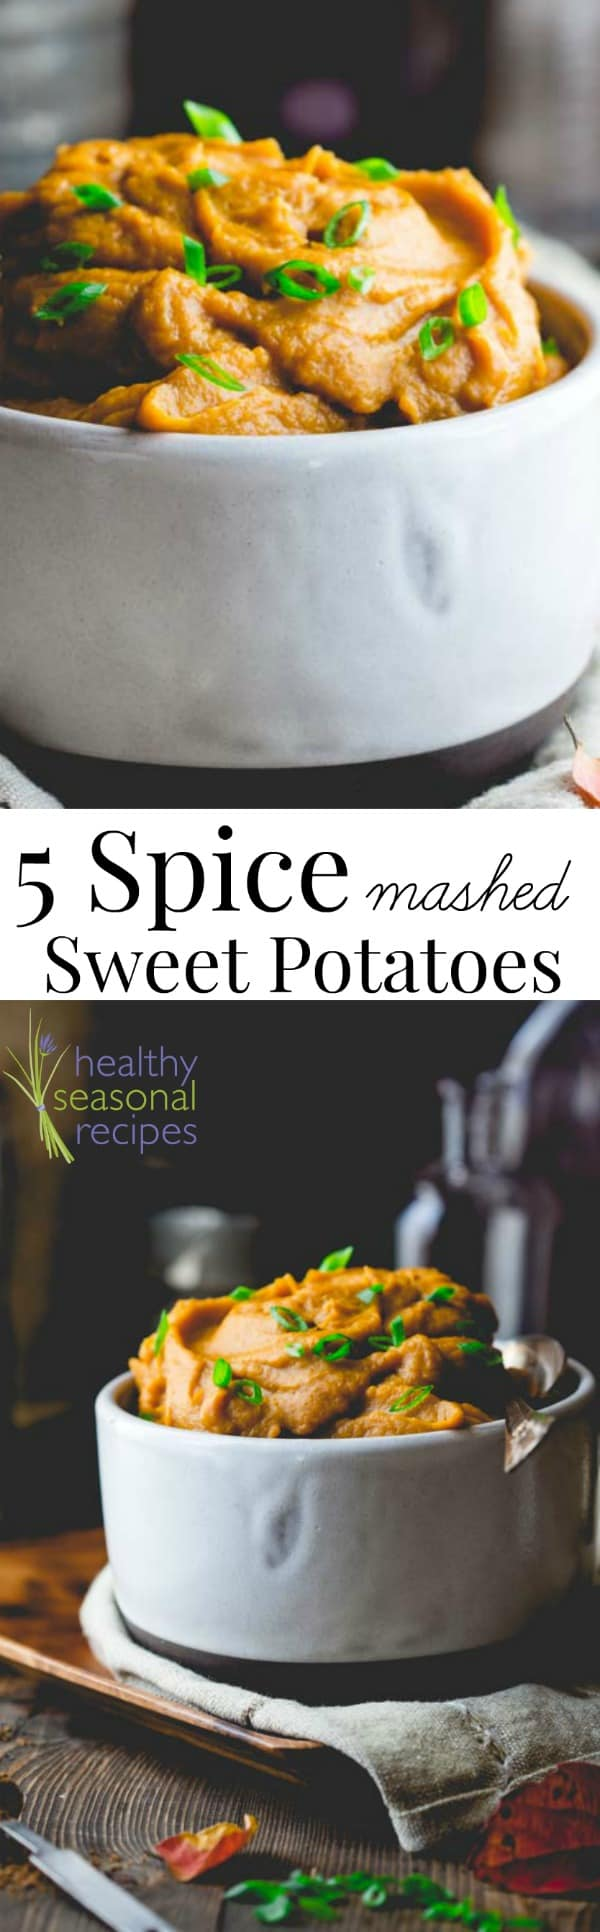 I dare you to not fall in love with these paleo five spice healthy mashed sweet potatoes! They make for an easy side dish during the cooler months. #paleo #vegan #healthy #sweetpotato #sweetpotatoes #mashedpotatoes #thanksgiving #sidedish #easy #cleaneating #fivespice